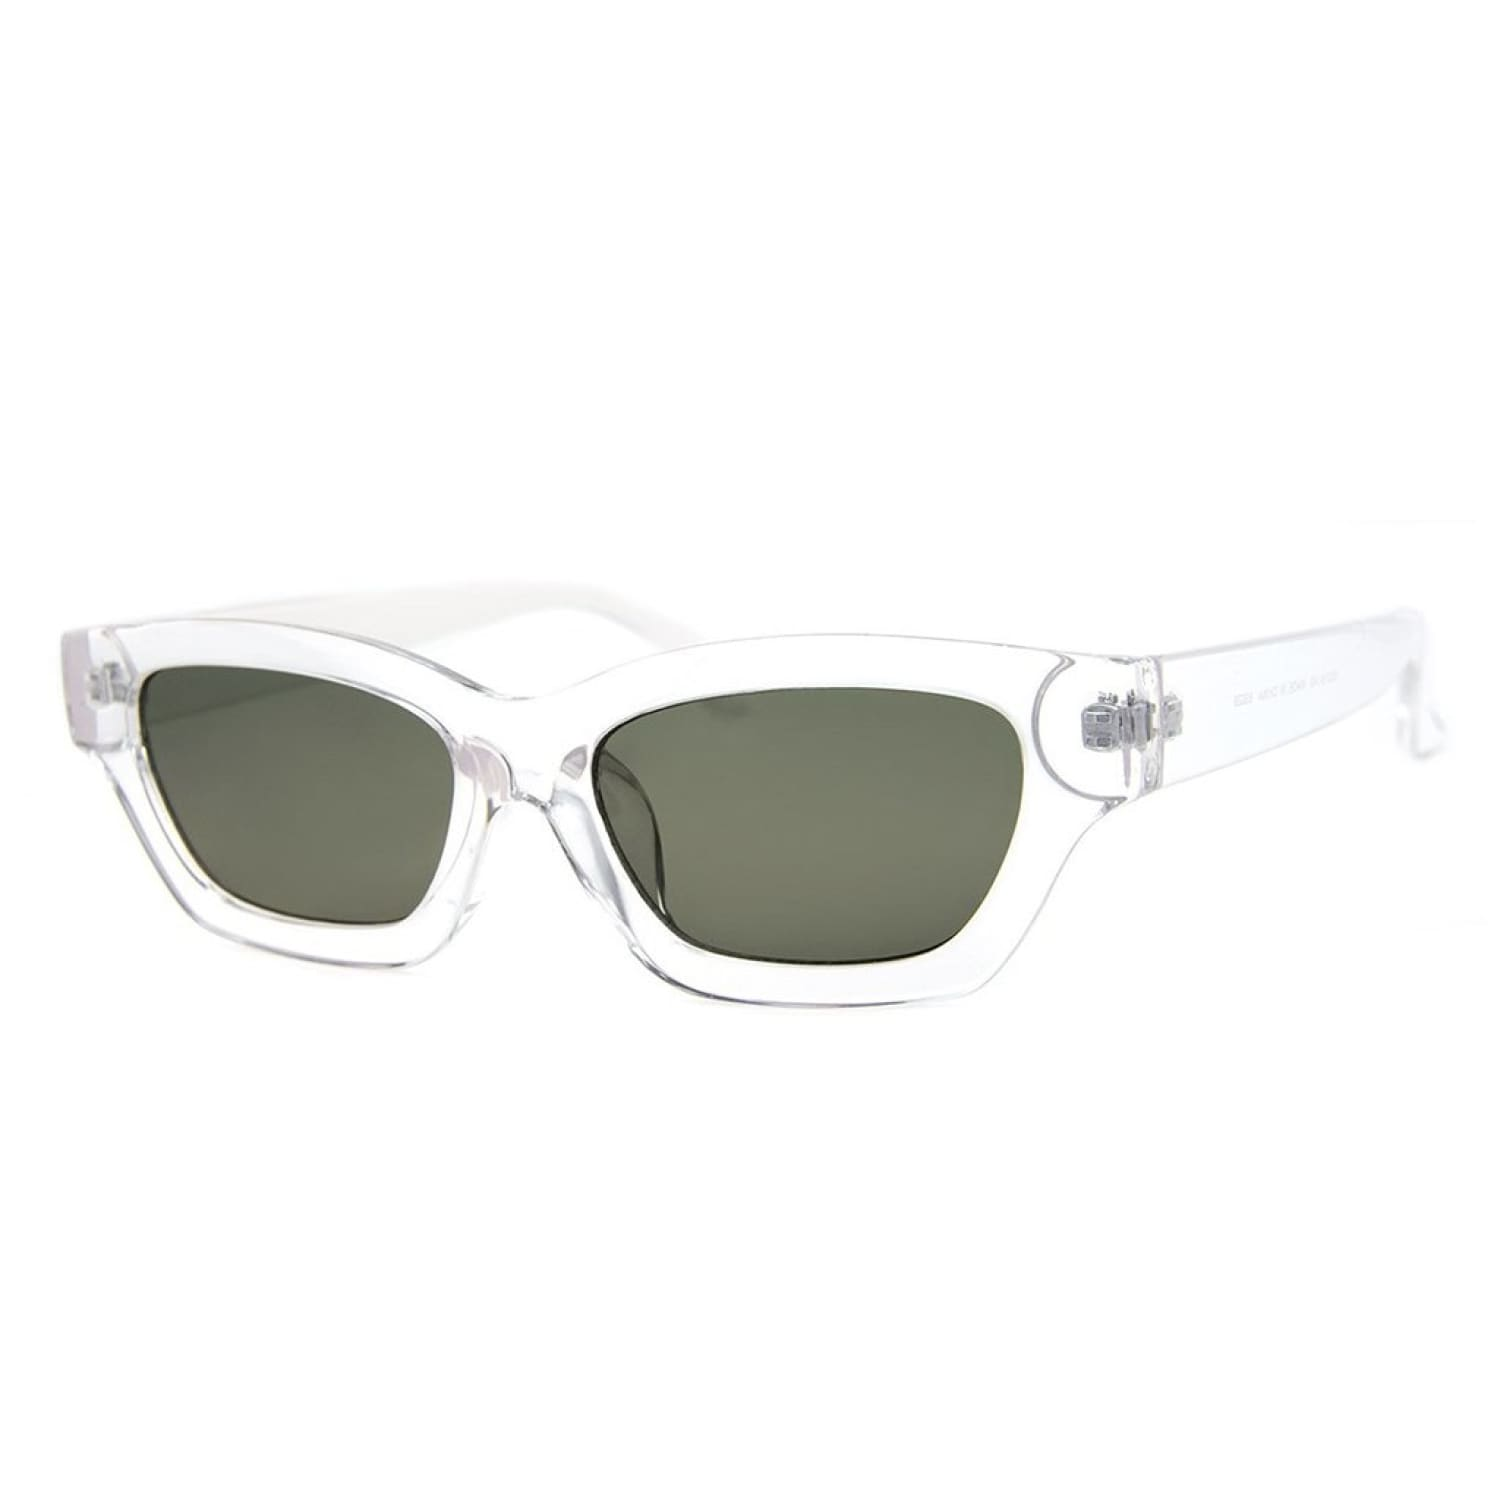 Clear Rounded Rectangle Sunglasses Accessories, Rounded